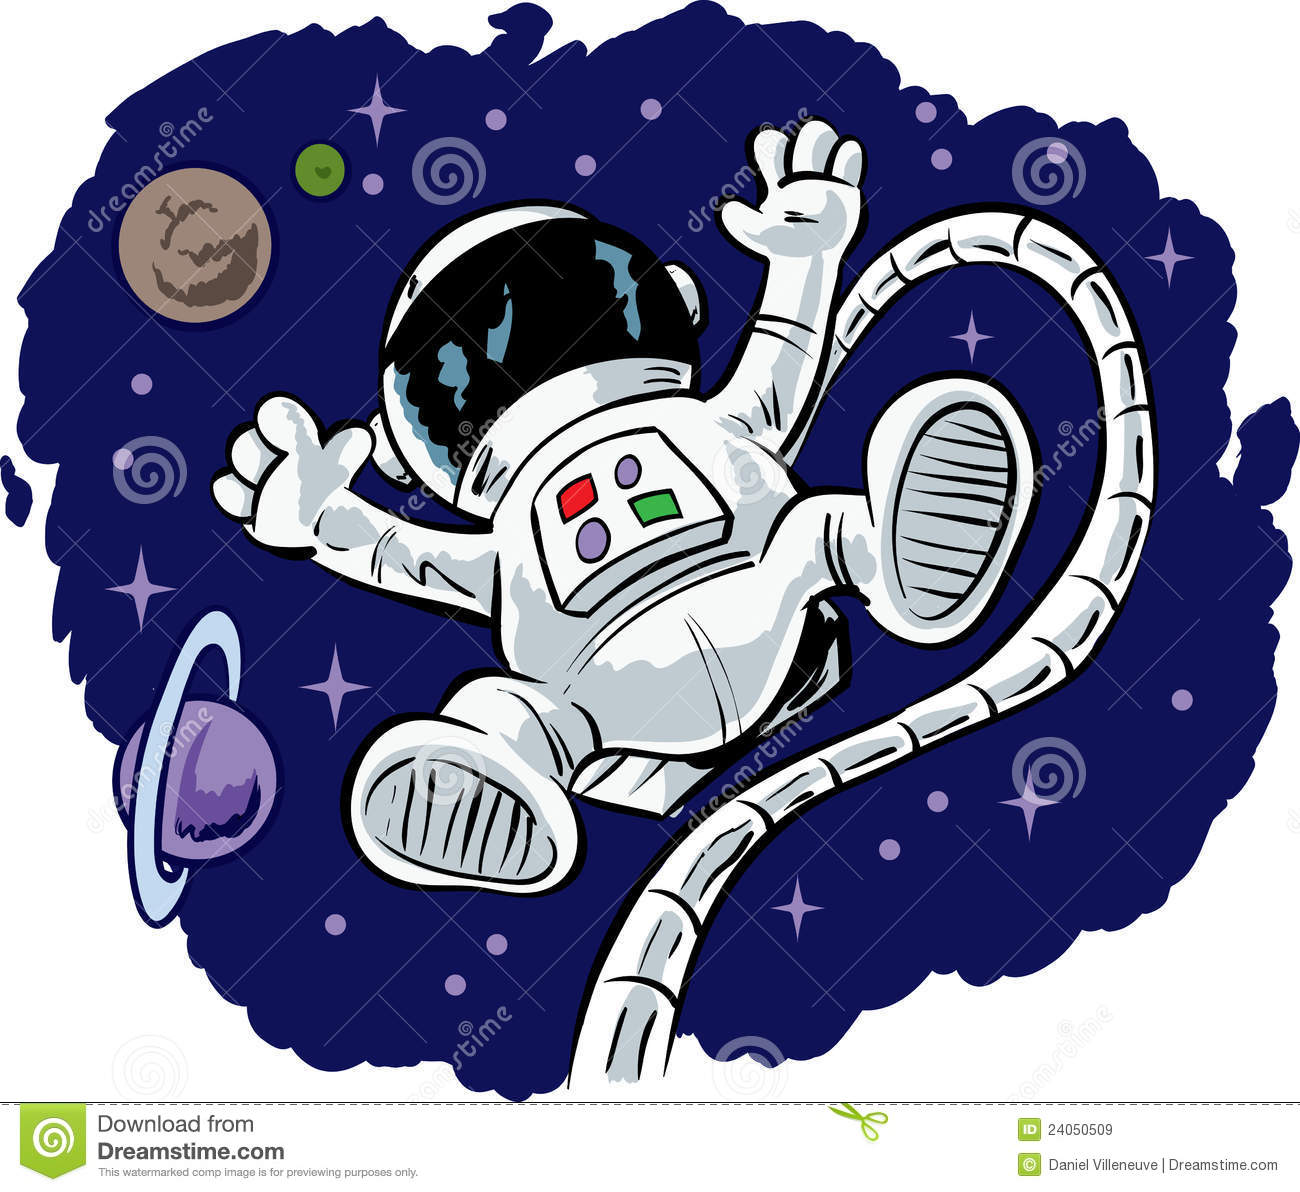 astronaut in space clipart - photo #26